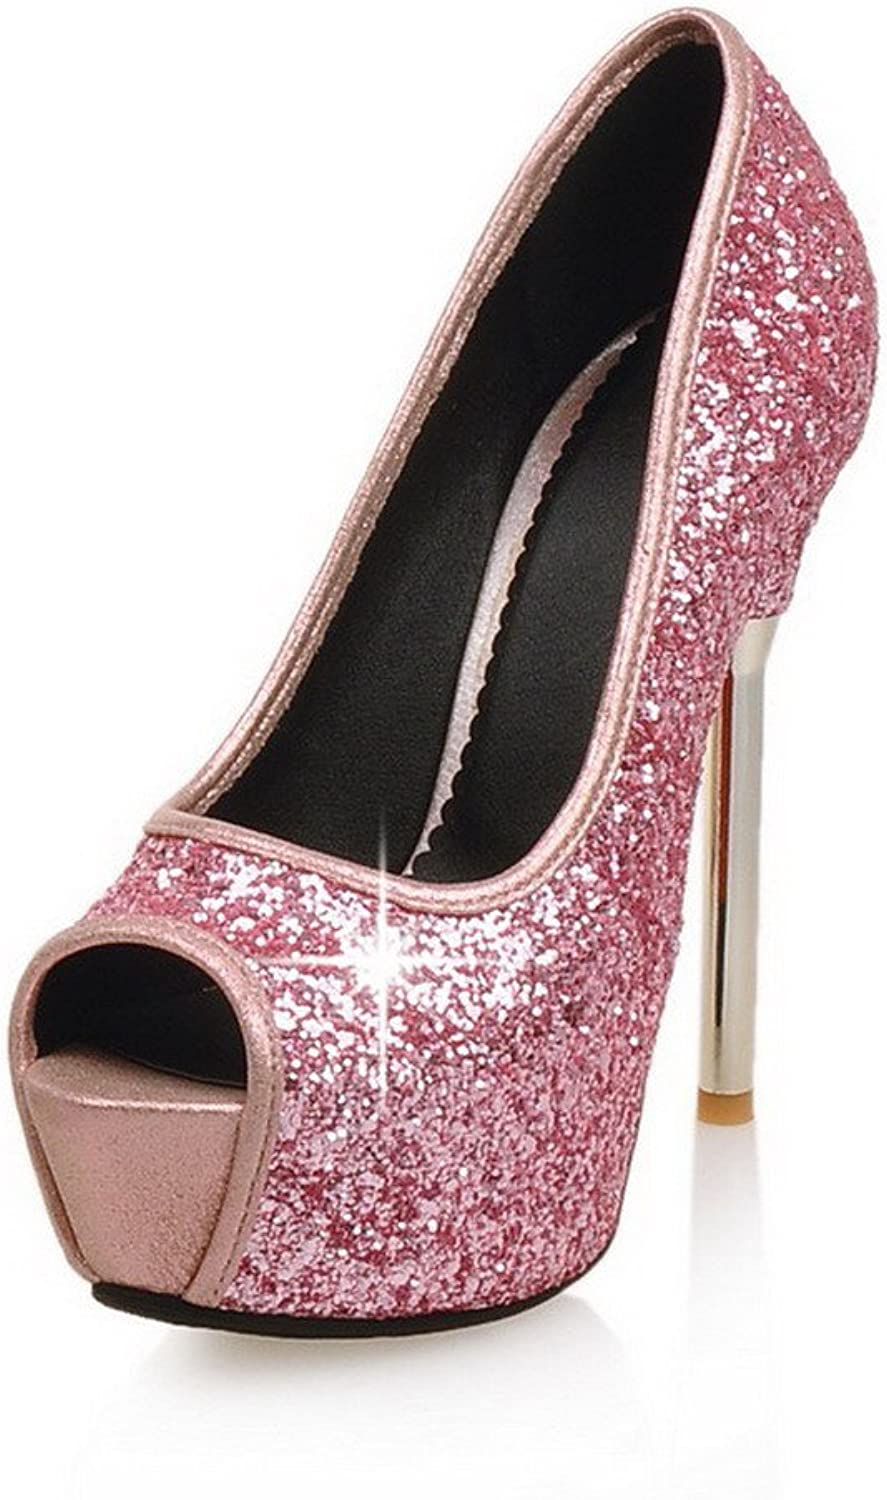 AllhqFashion Women's Peep Toe Pull On Sequins Assorted color Spikes Stilettos Sandals